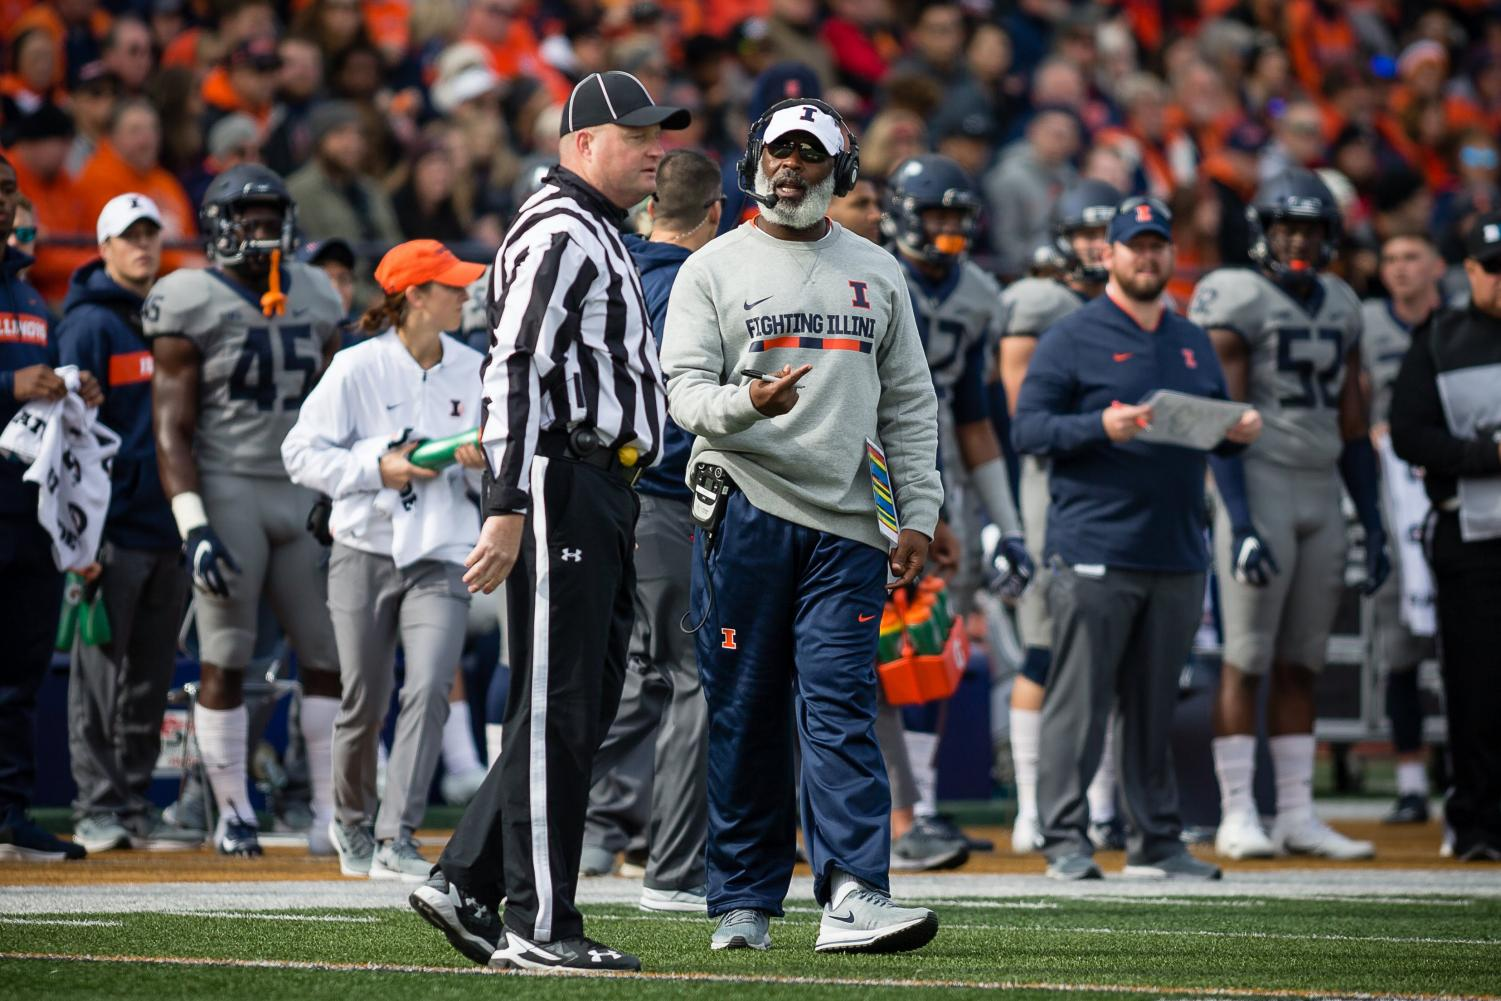 Illinois head coach Lovie Smith talks to the referee during the game against Purdue at Memorial Stadium on Saturday. The Illini lost 46-7.